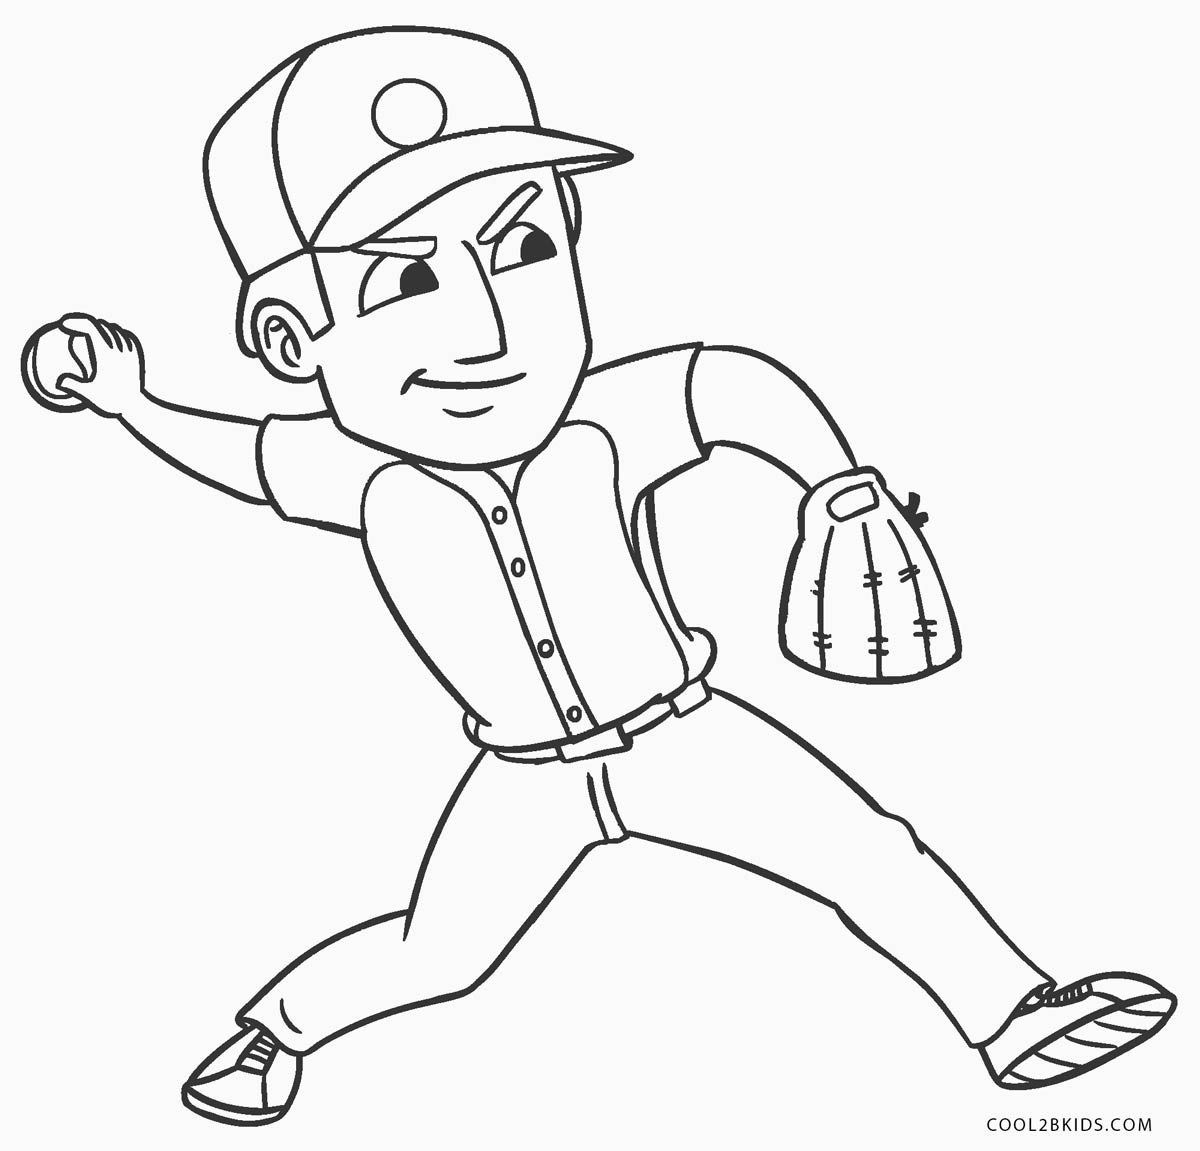 Baseball Players Coloring Pages Ideas Coloring Pages Baseball Coloring Pages My Little Pony Coloring